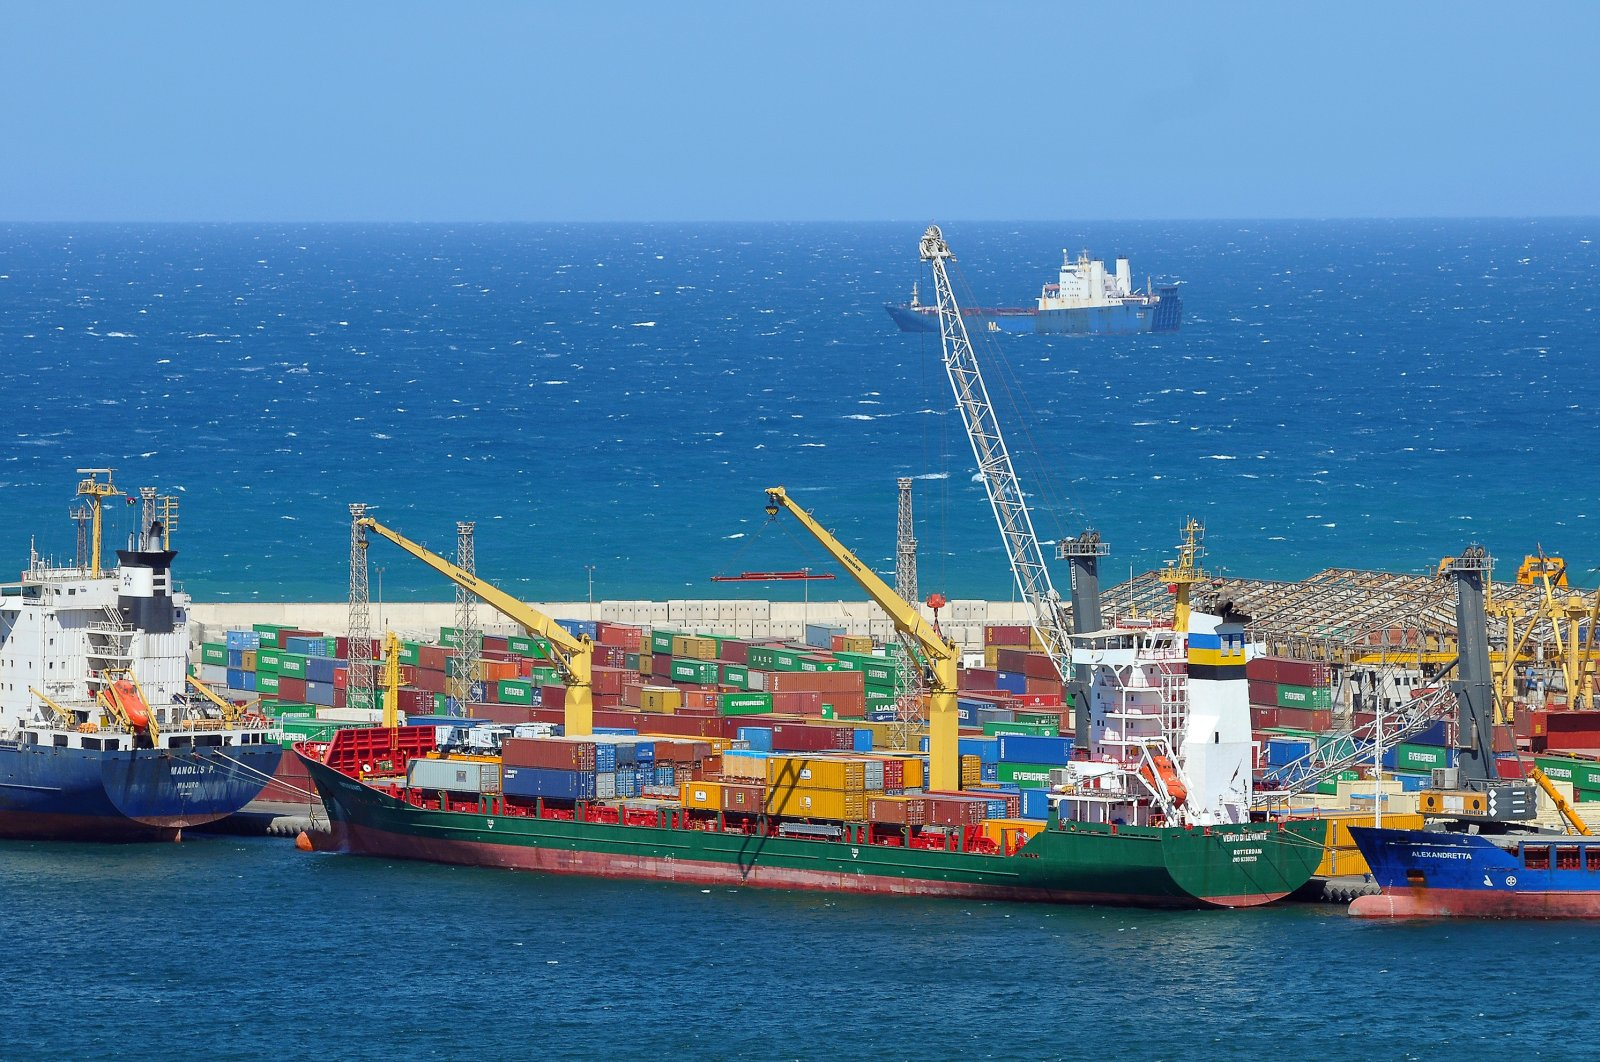 A view of the Dutch container ship Vento di Levante in the harbor of Tripoli, Libya, March 15, 2013. (Getty Images)